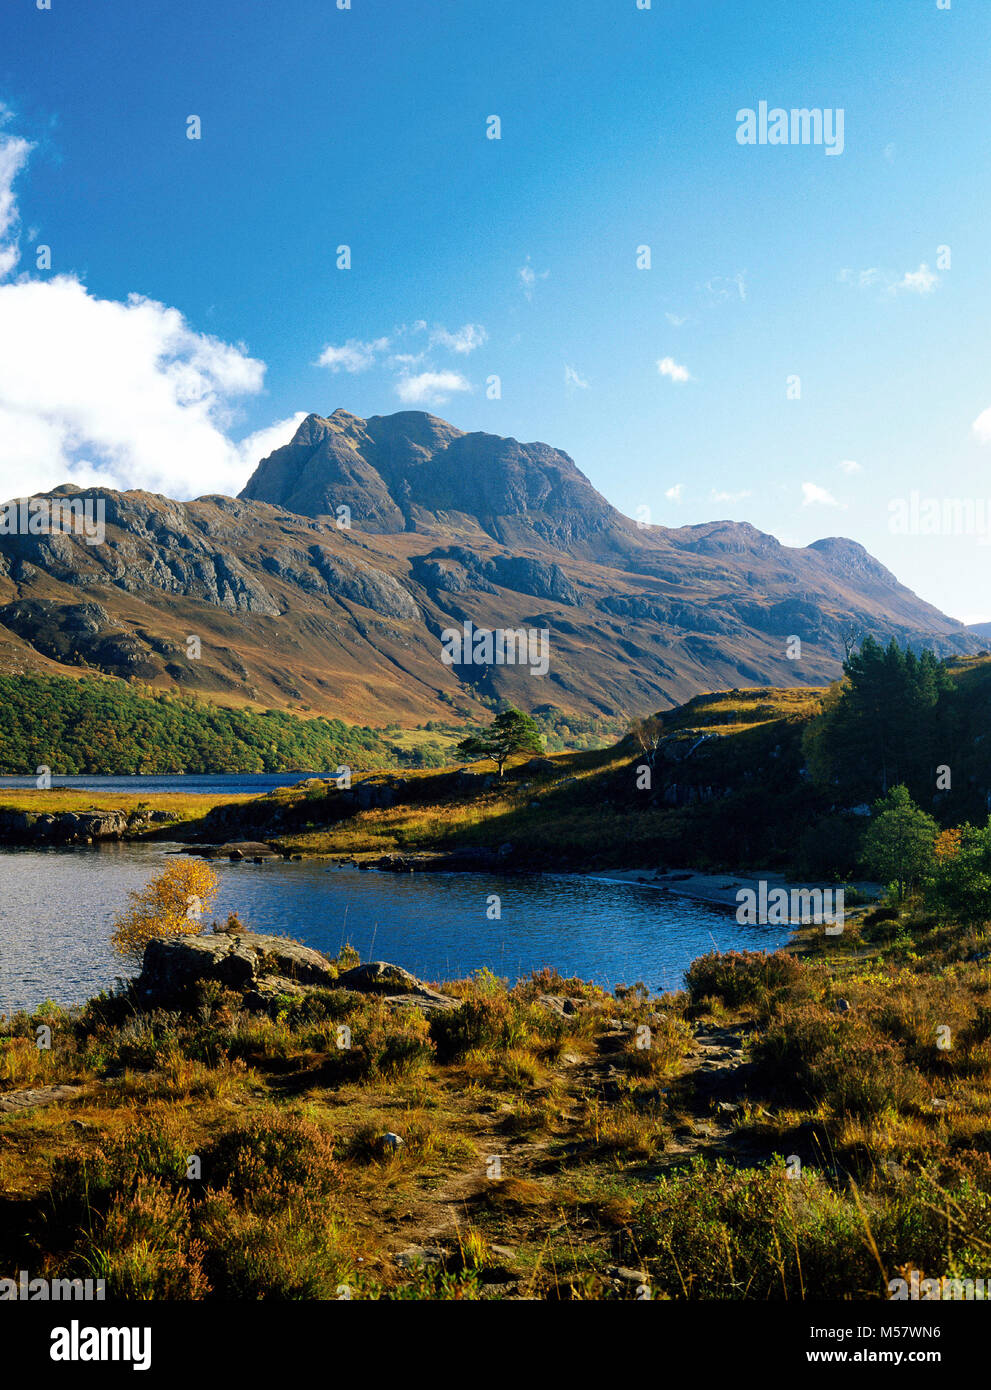 Slioch mountain and Loch Maree, near Kinlochewe in Wester Ross, Highland, Scotland - Stock Image